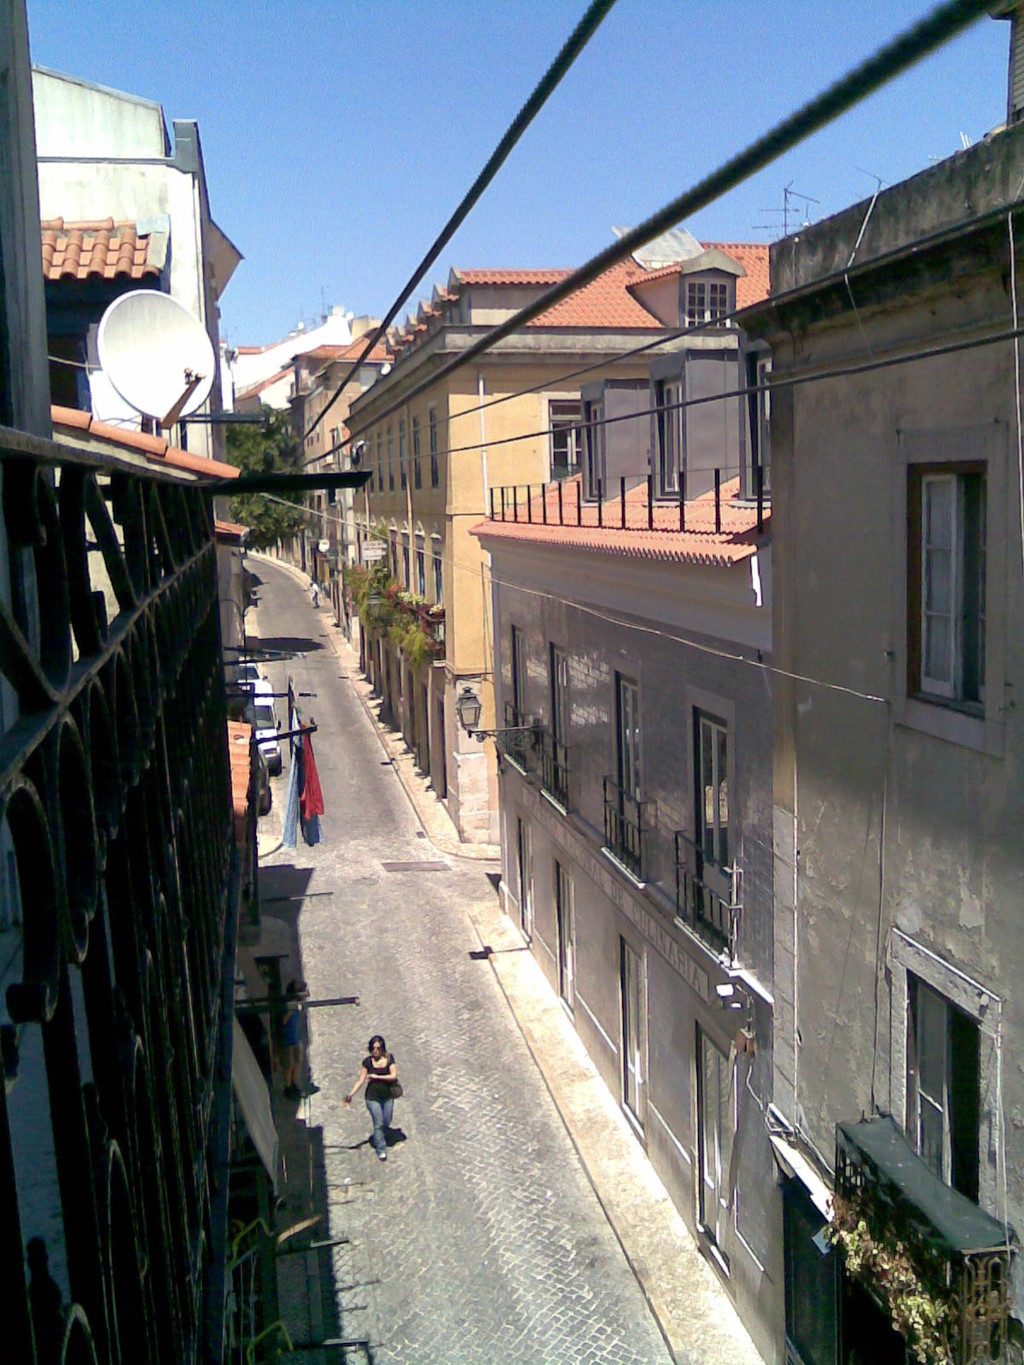 Apartment for renting in Lisbon city centre Bairro Alto ...